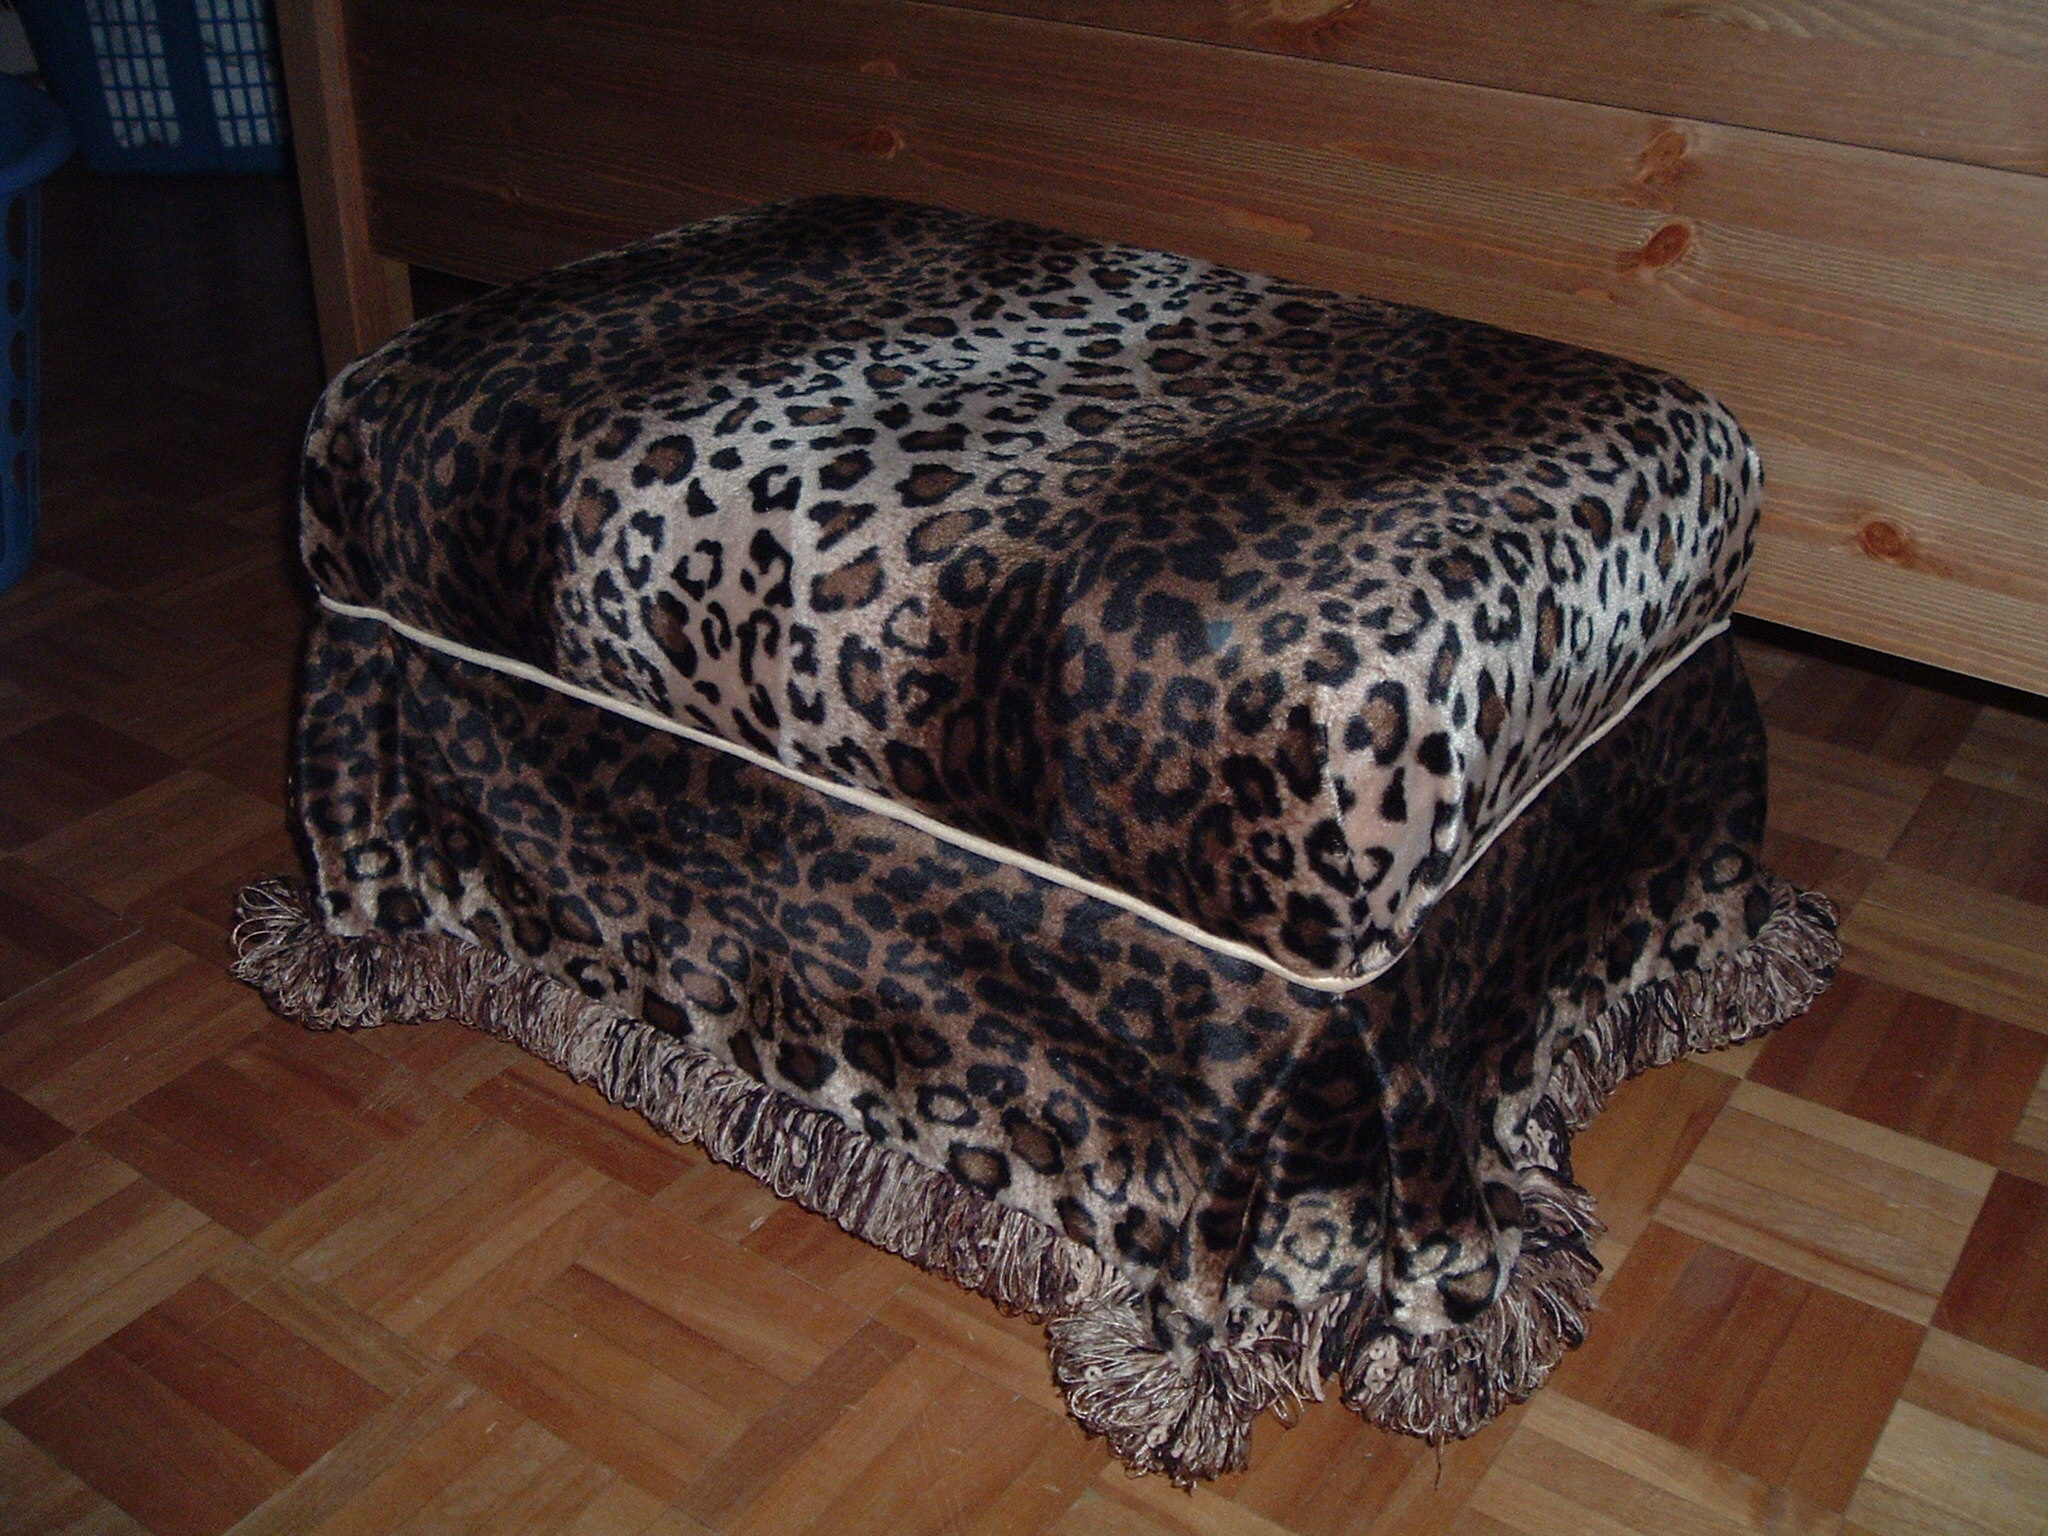 Leopard covered ottoman